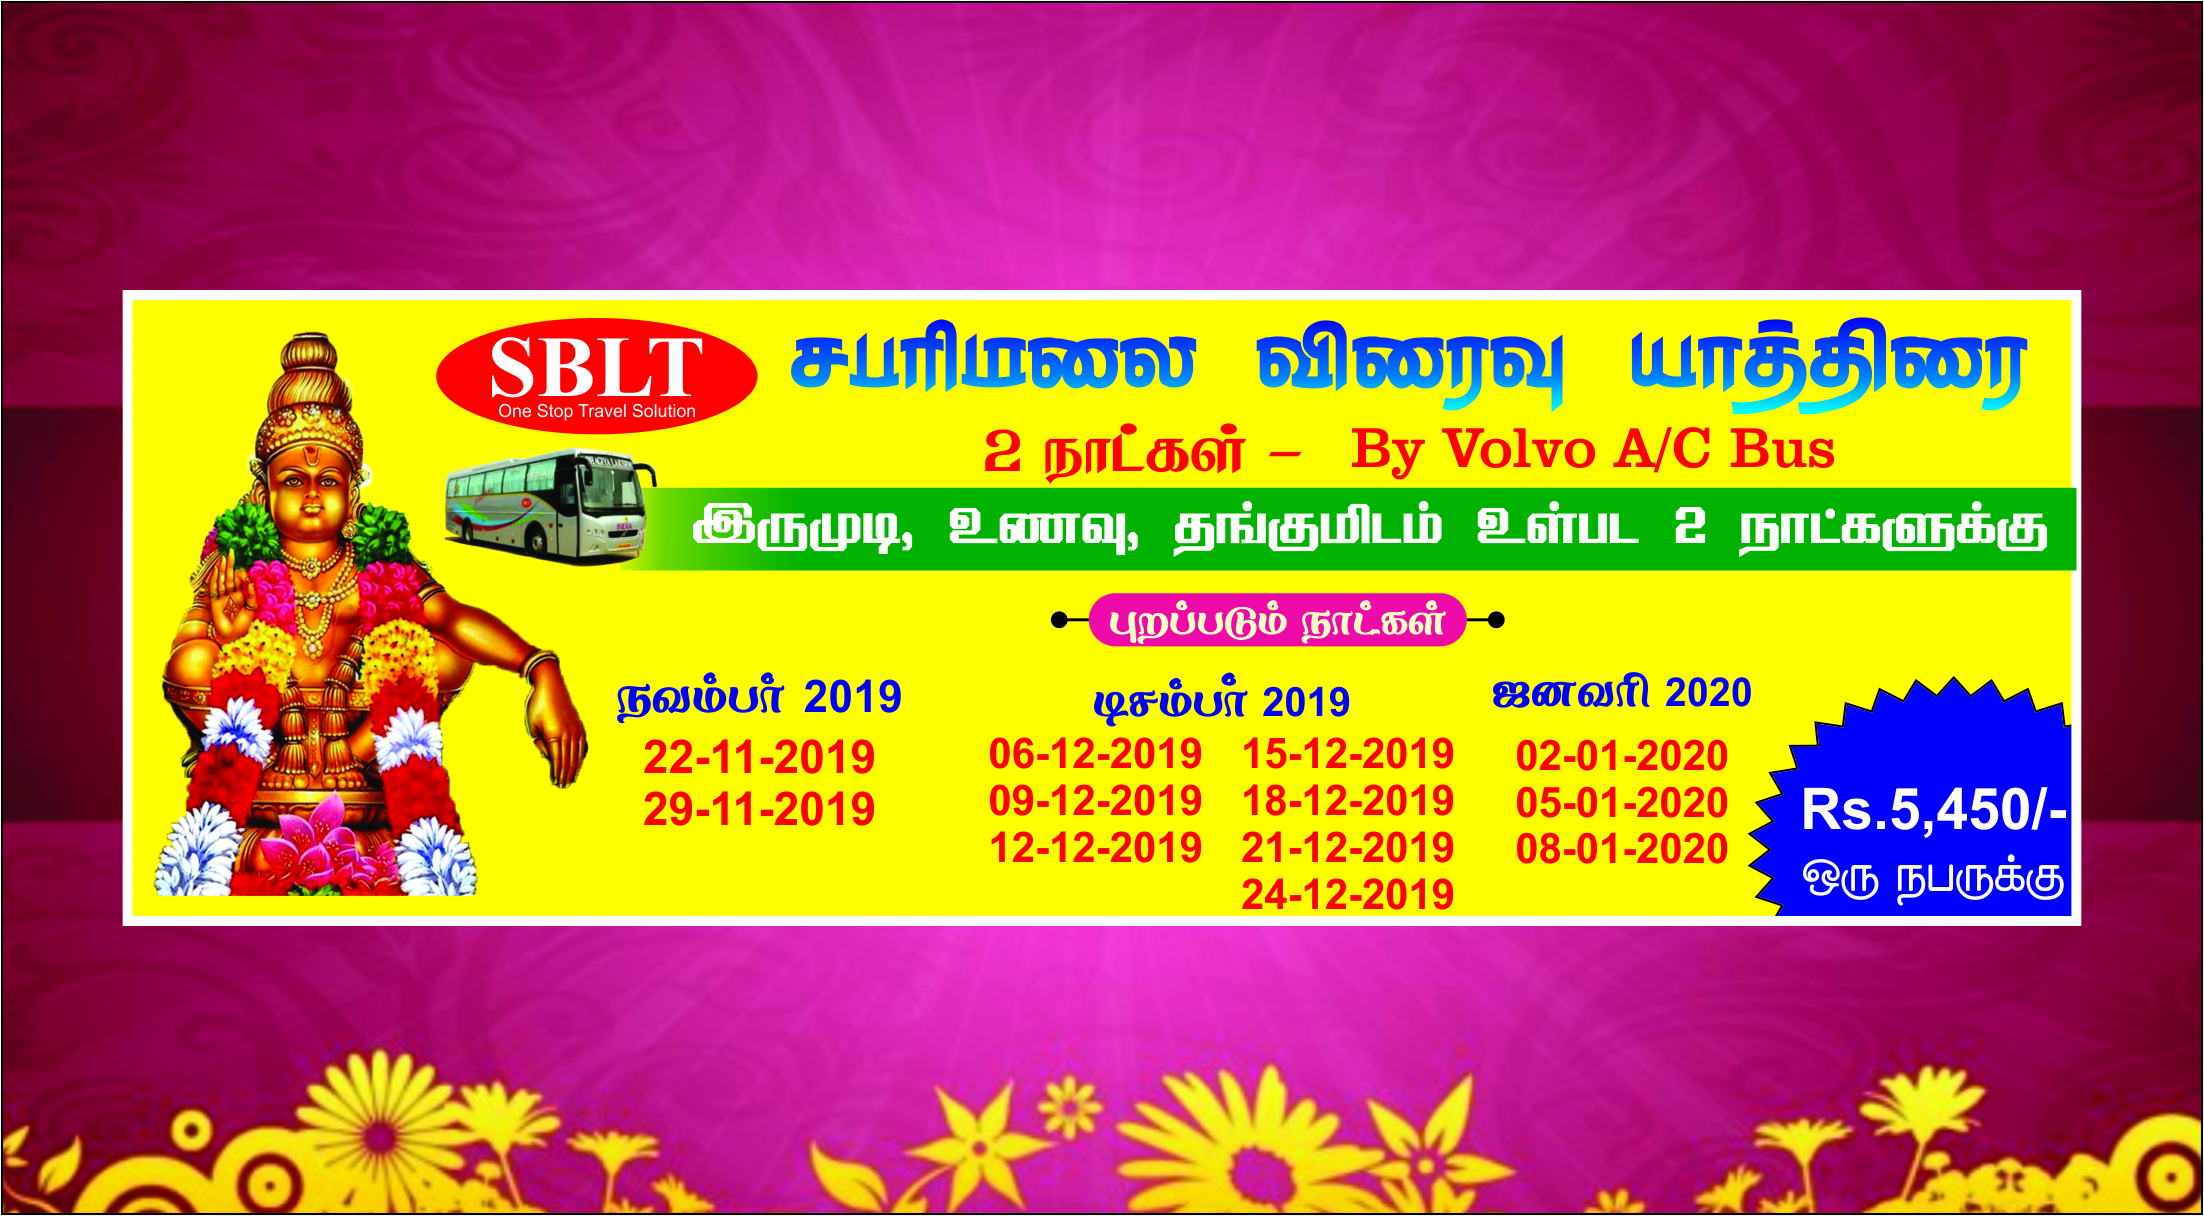 SBLT Sabari Speed Yathra Sleeper coach 2019